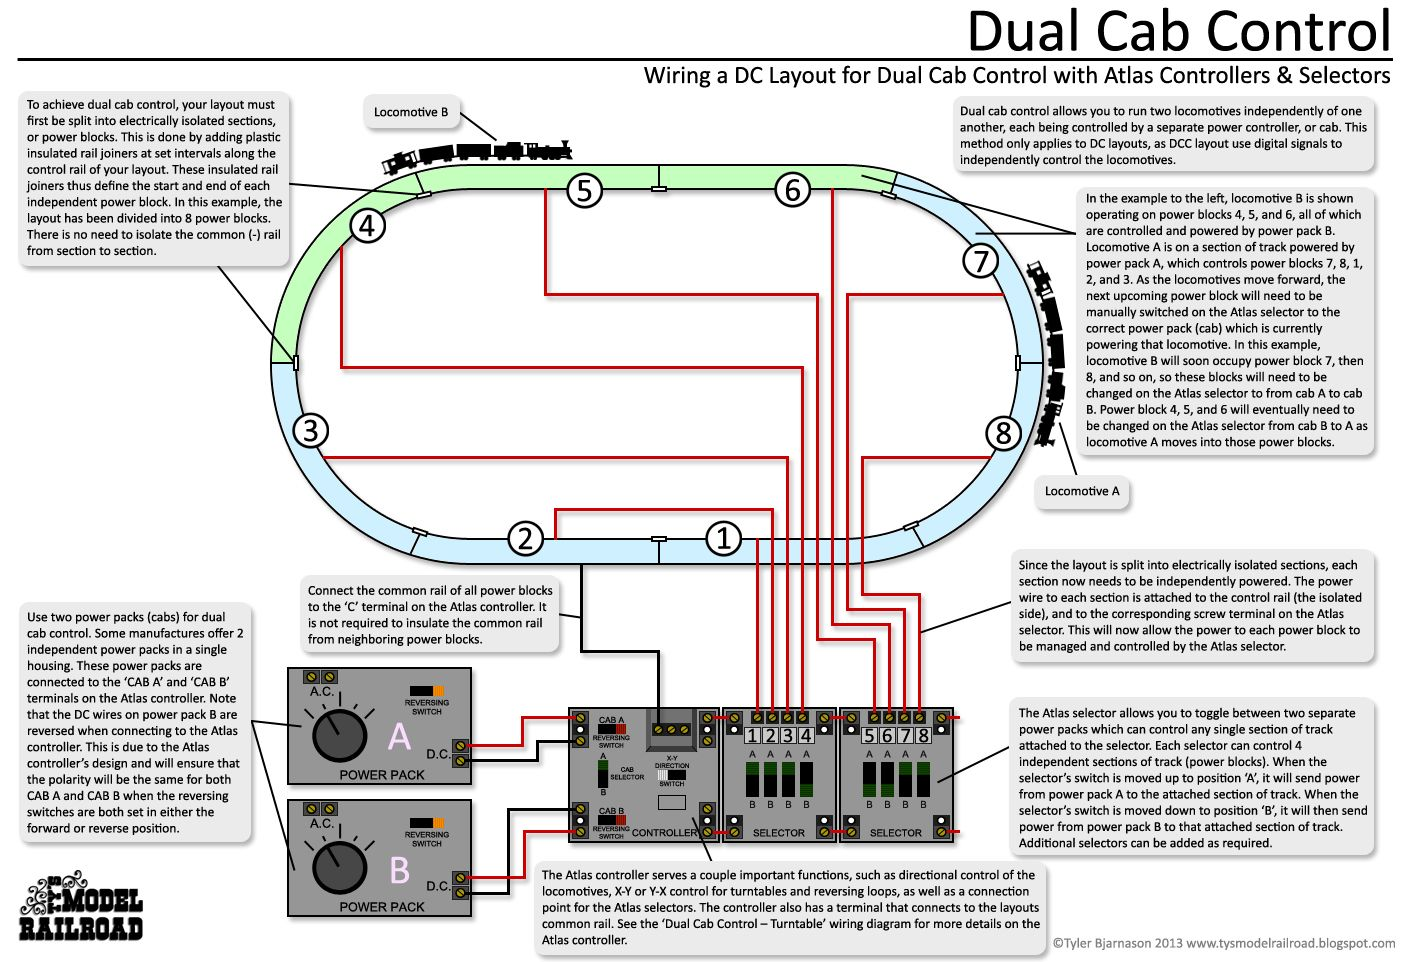 How To Wire A Layout For Dual Cab Control Using An Atlas